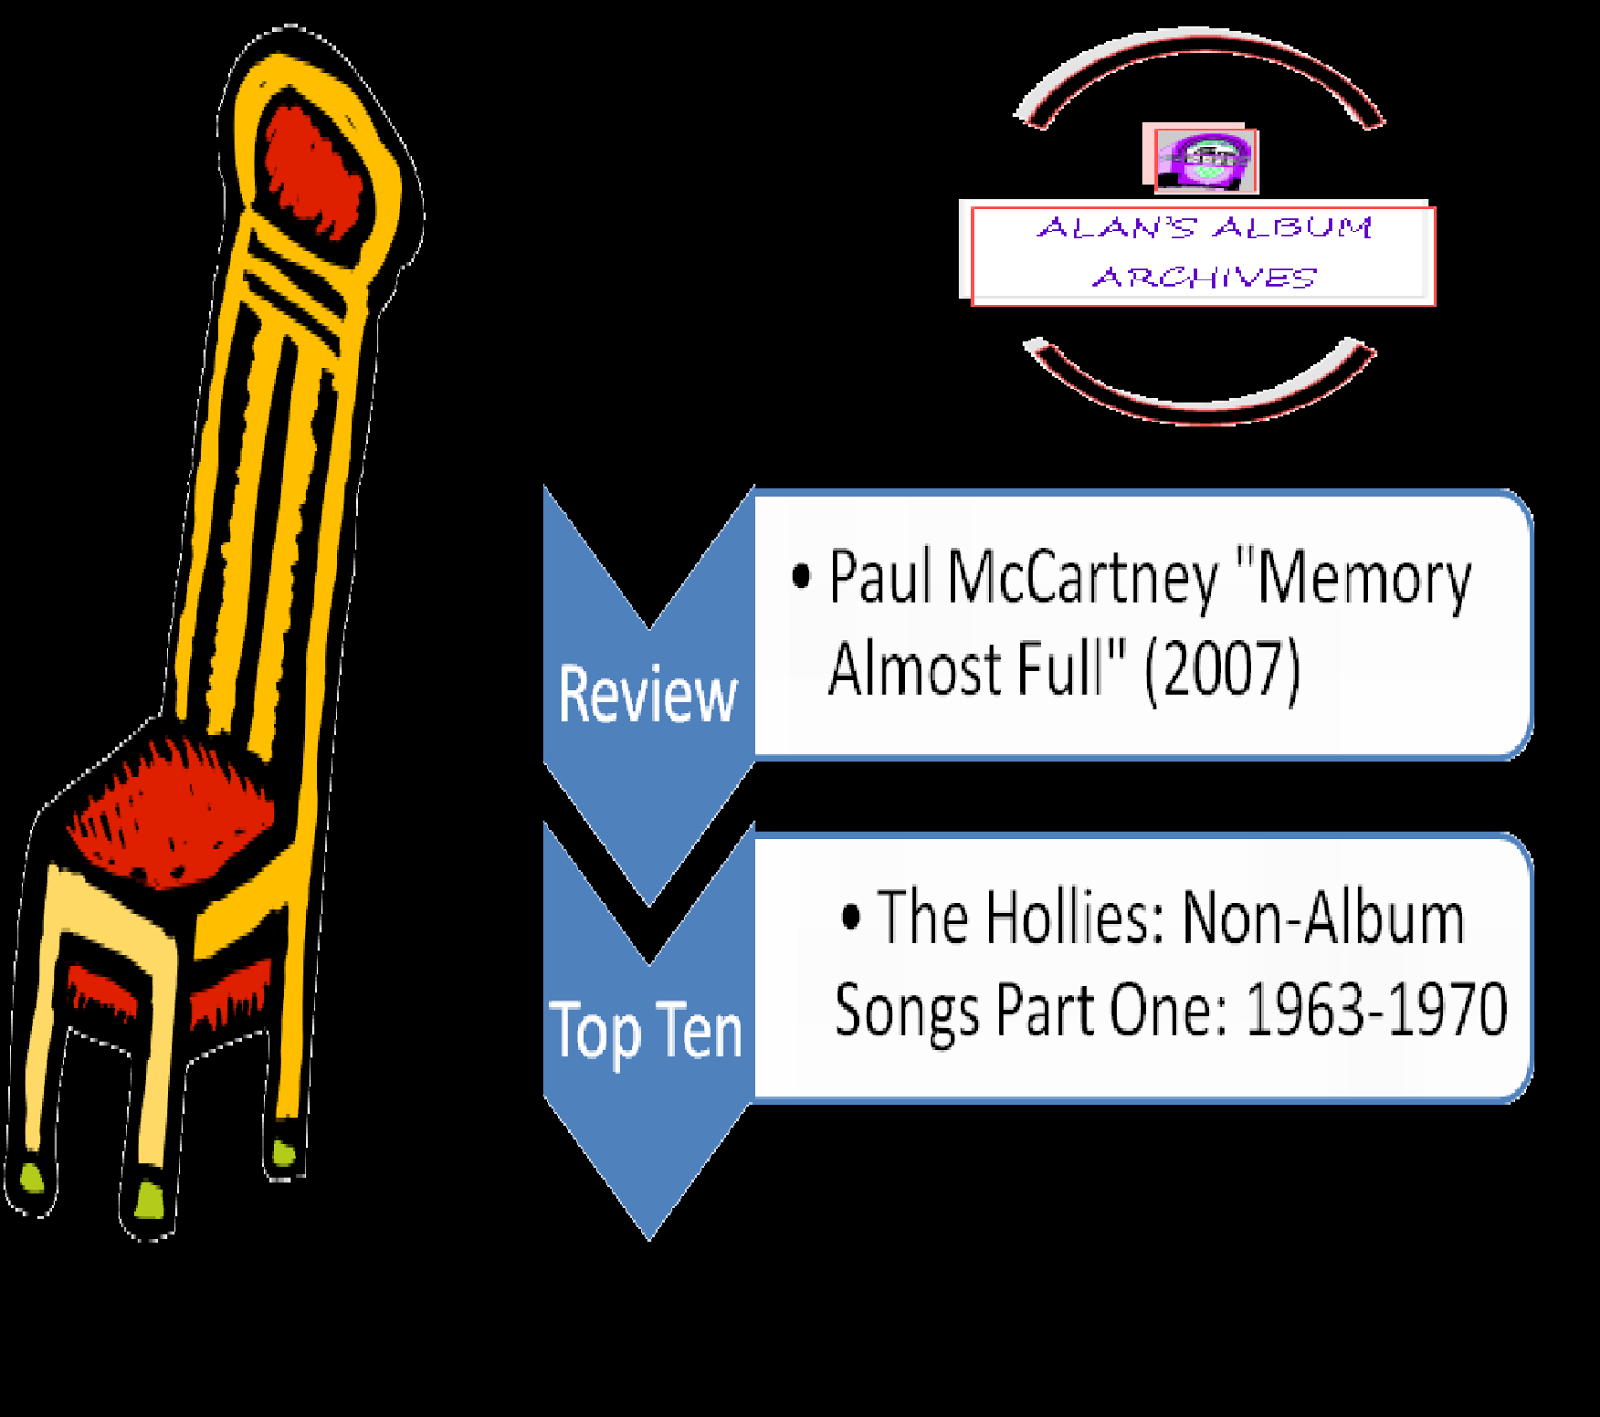 Alan\'s Album Archives: The Hollies: Non-Album Songs Part One: 1963-1970